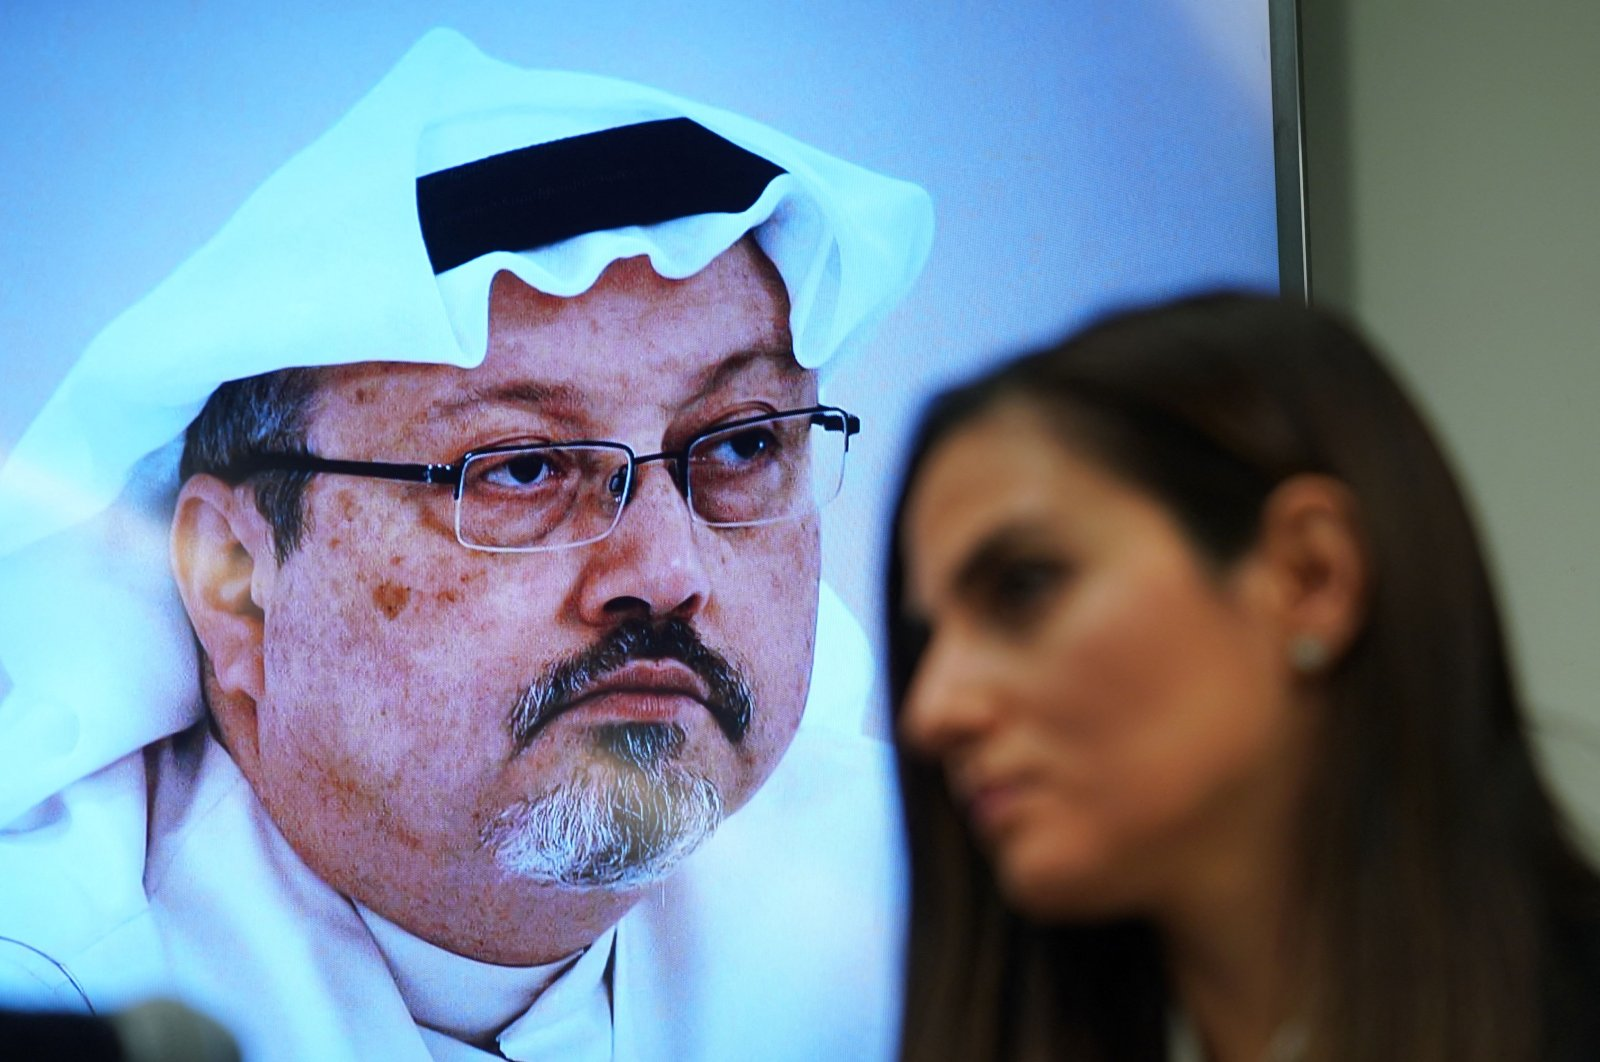 Sherine Tadros, head of New York (UN) Office of Amnesty International, speaks during a news conference at the United Nations next to a photo of Jamal Khashoggi, Oct. 18, 2018. (AFP Photo)